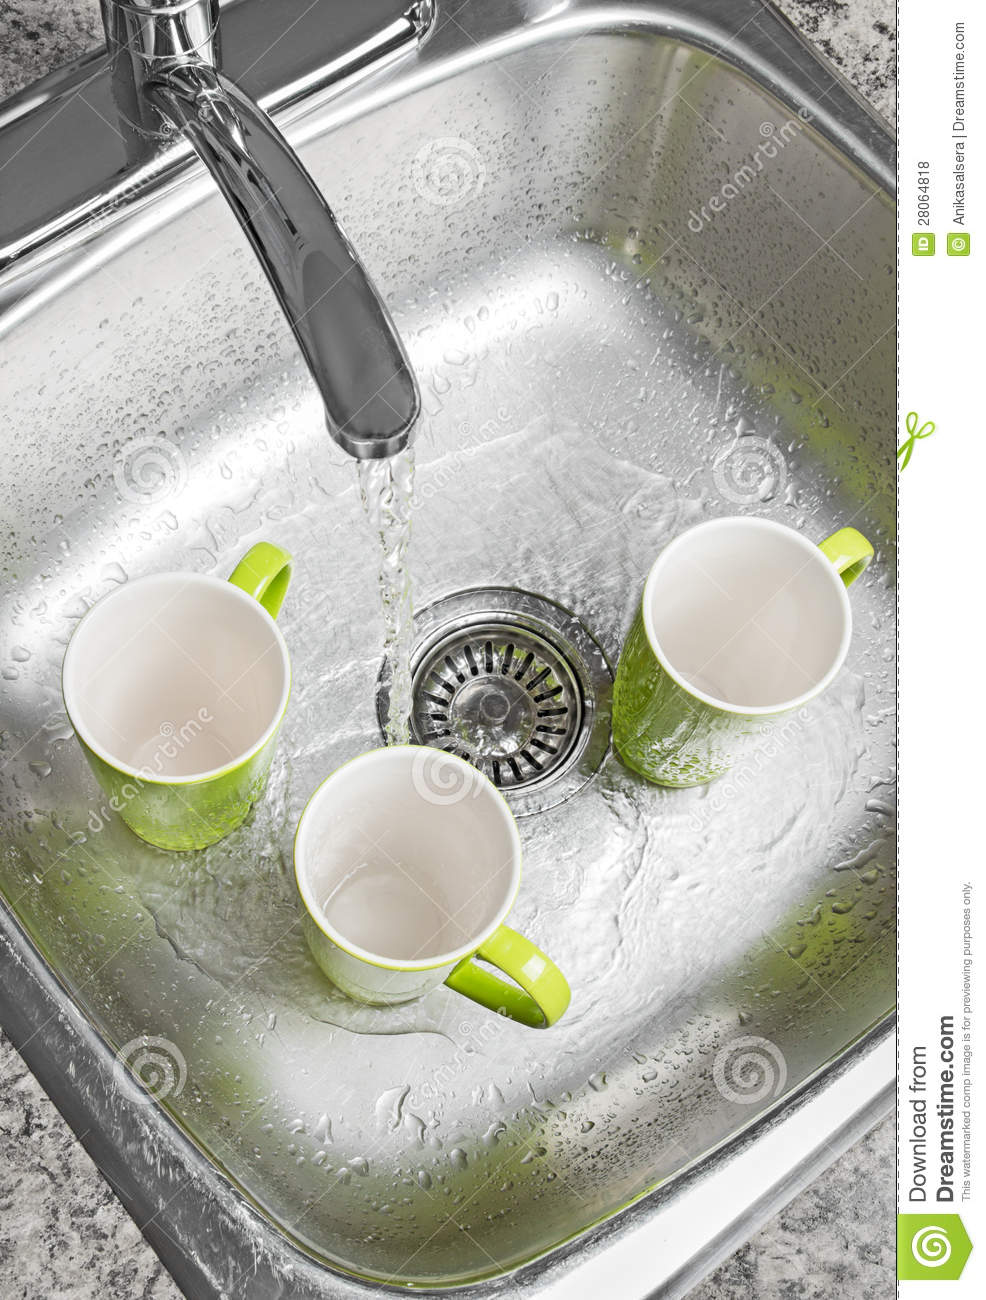 Washing Cups In The Kitchen Sink Stock Photo Image 28064818